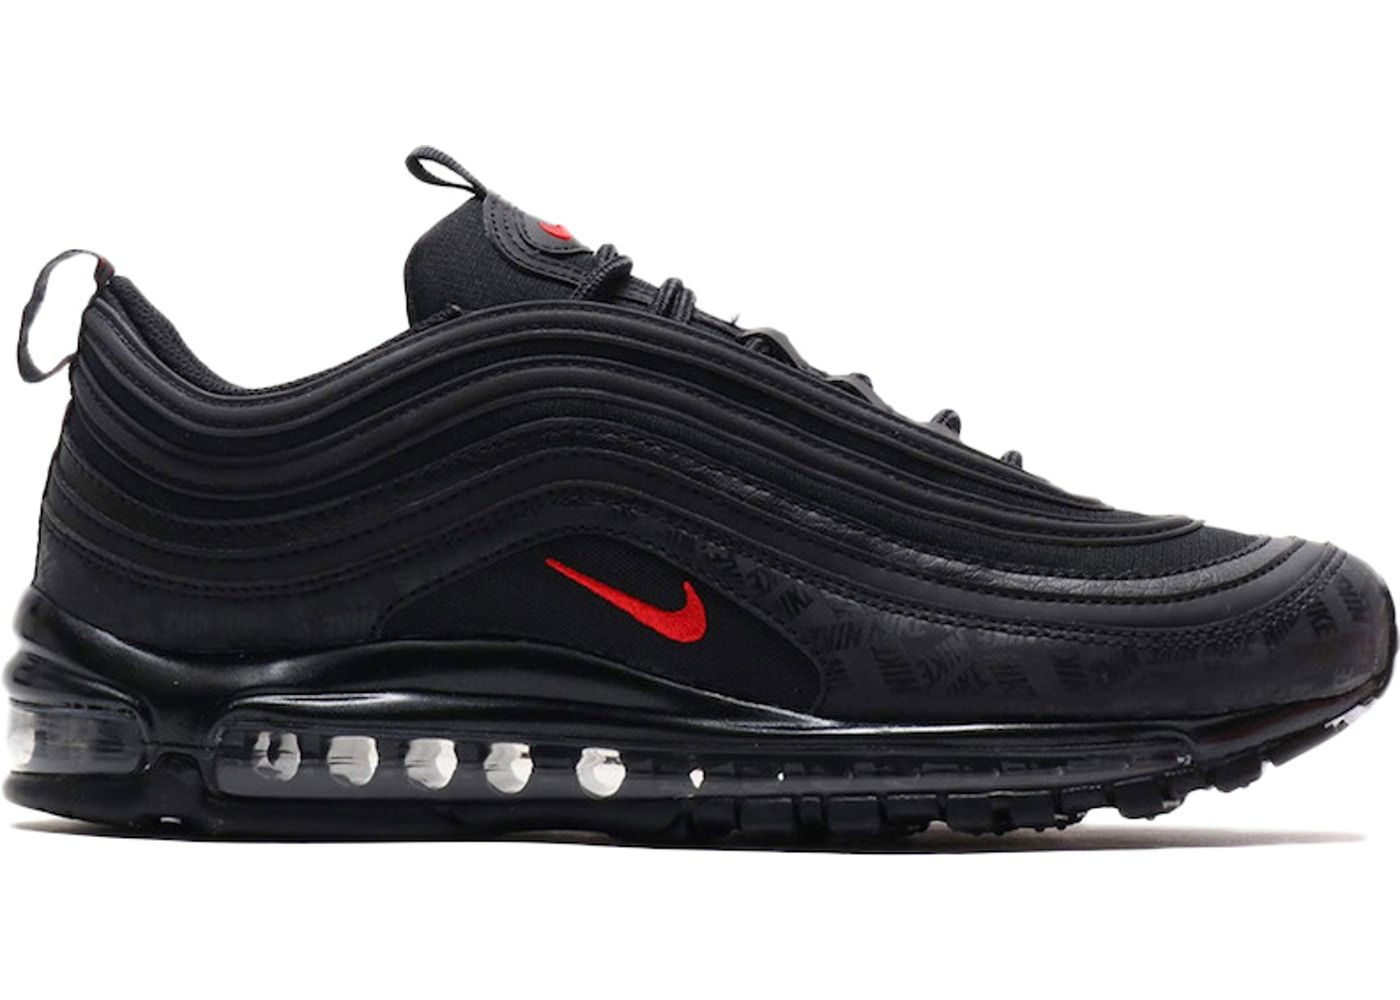 83c4ece4ca Check out the Air Max 97 All-Over Print Black Red available on StockX